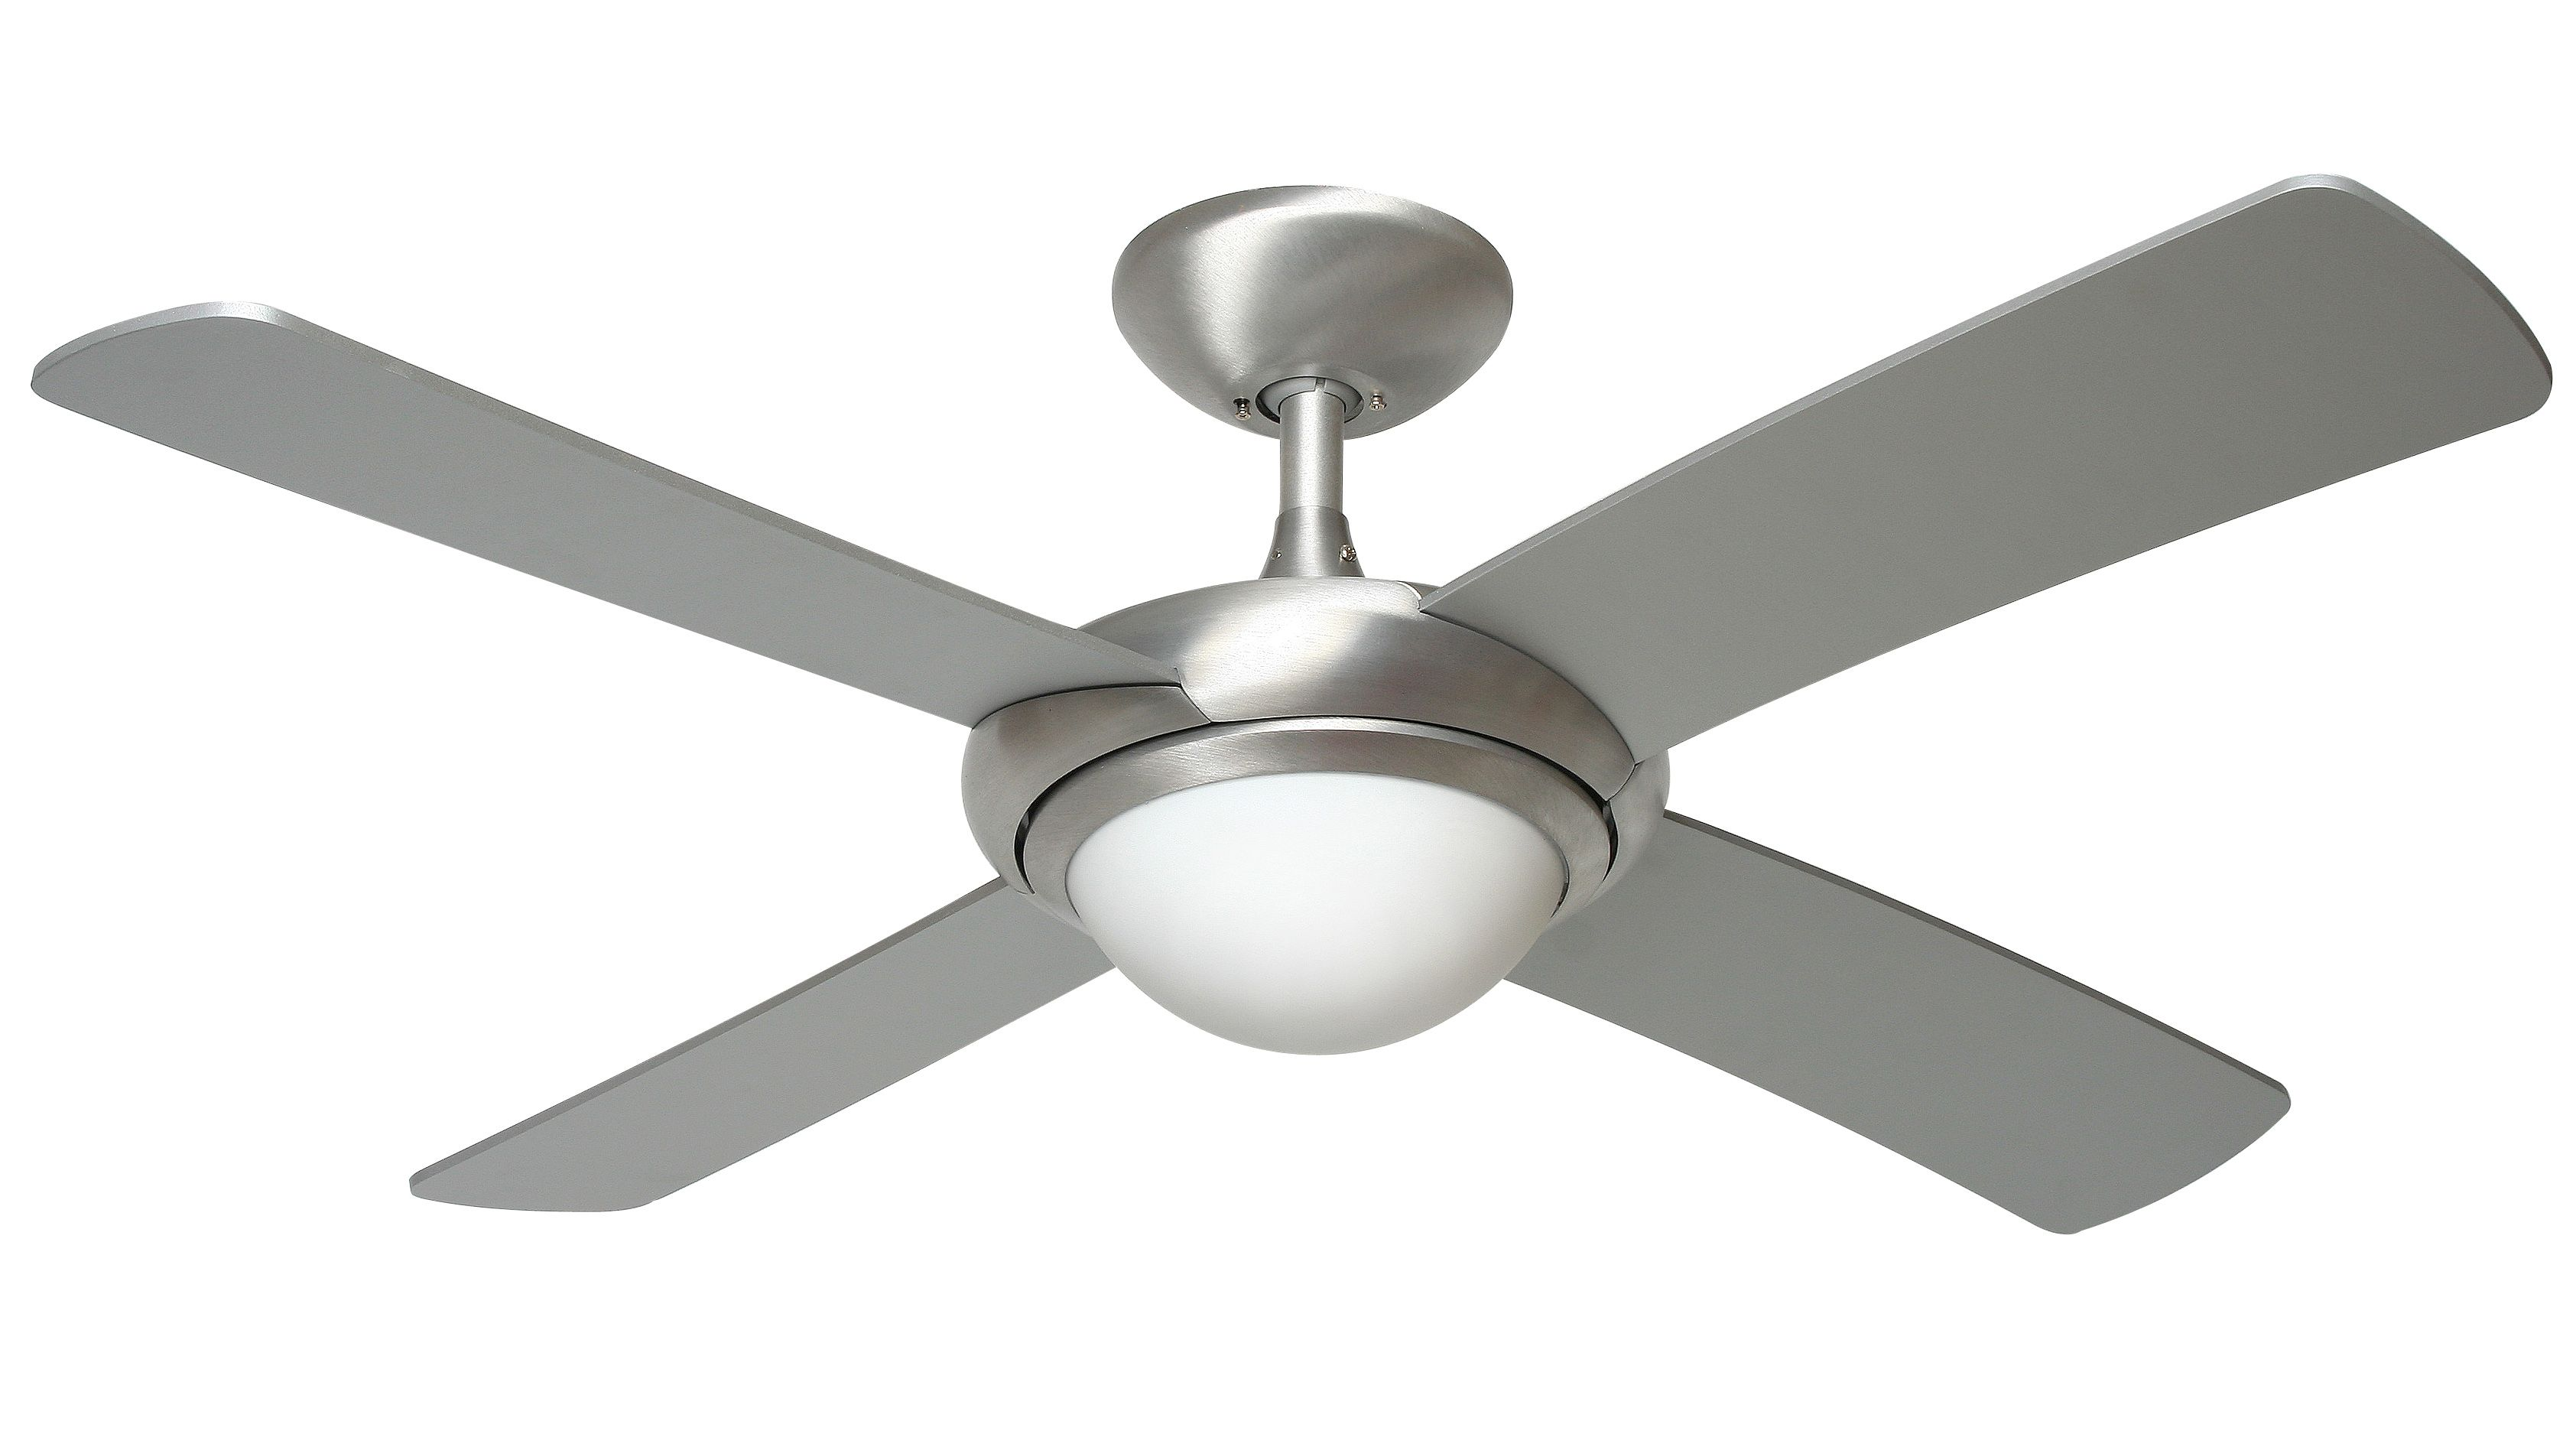 Fantasia orion 44 brushed aluminium ceiling fan remote control light fantasia orion 44 brushed aluminium ceiling fan remote control light 115311 aloadofball